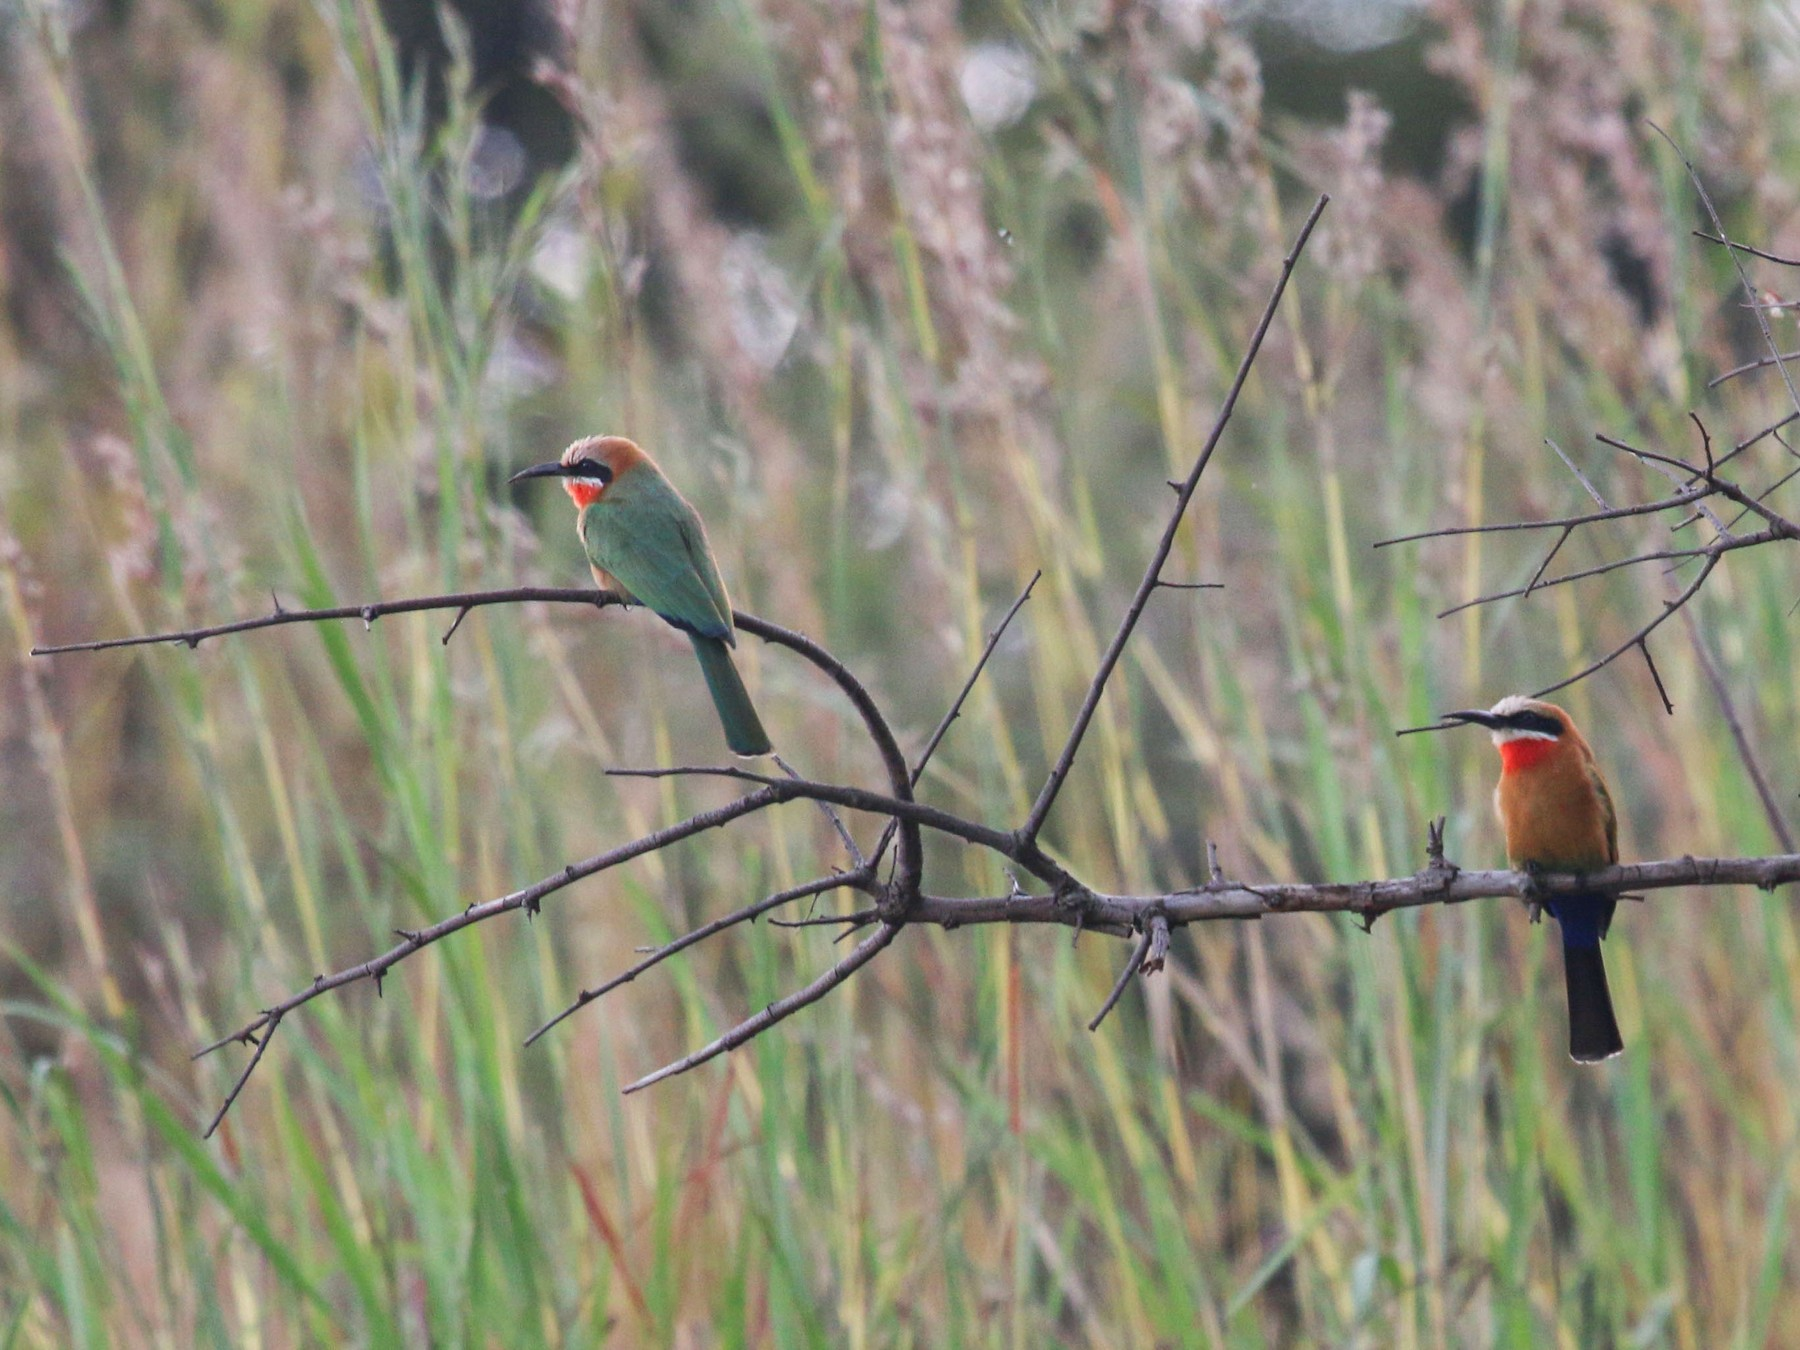 White-fronted Bee-eater - Allison Miller